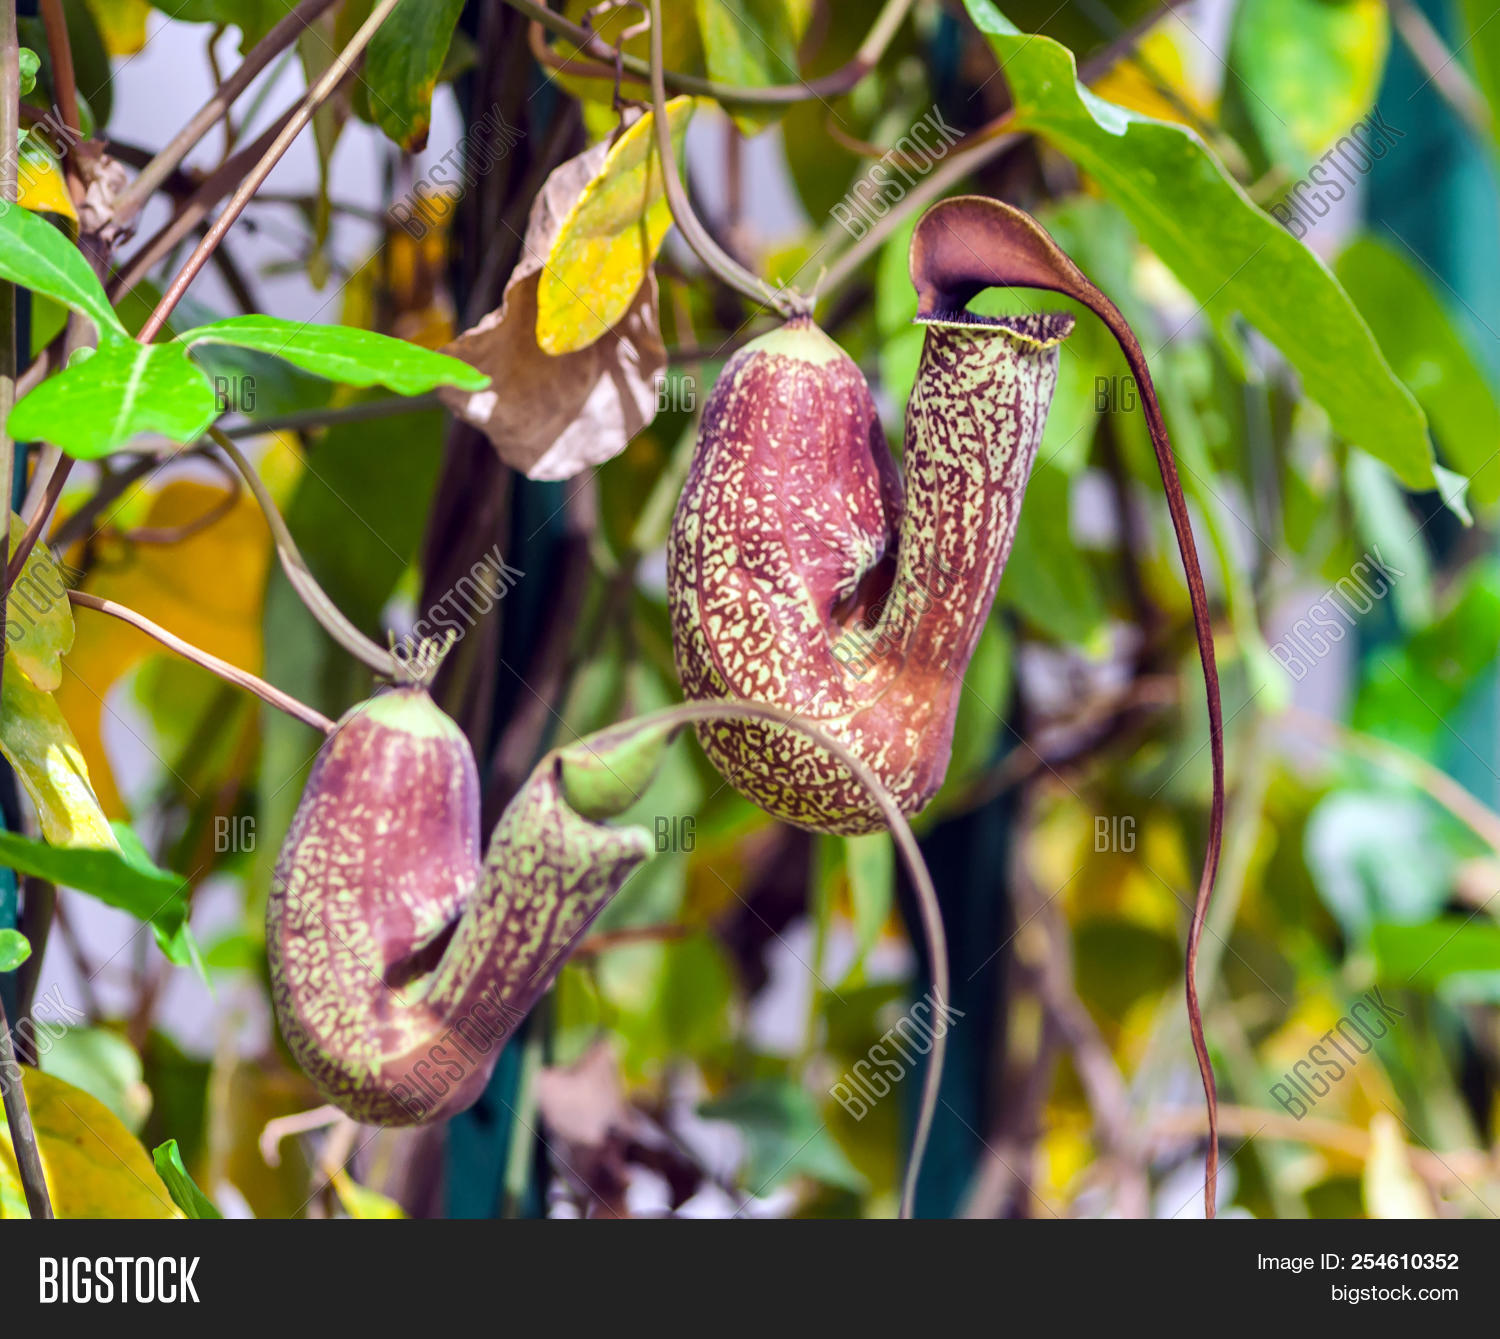 autumn,background,beautiful,bloom,blossom,blossoming,branch,bright,brownish,closeup,color,colorful,flora,flower,foliage,forest,garden,green,grounds,healthy,leaf,light,natural,nature,nobody,orange,outdoor,plant,predatory,rapacious,ravenous,red,season,sheet,speck,spot,summer,summertime,two,verdant,vivid,yard,yellow